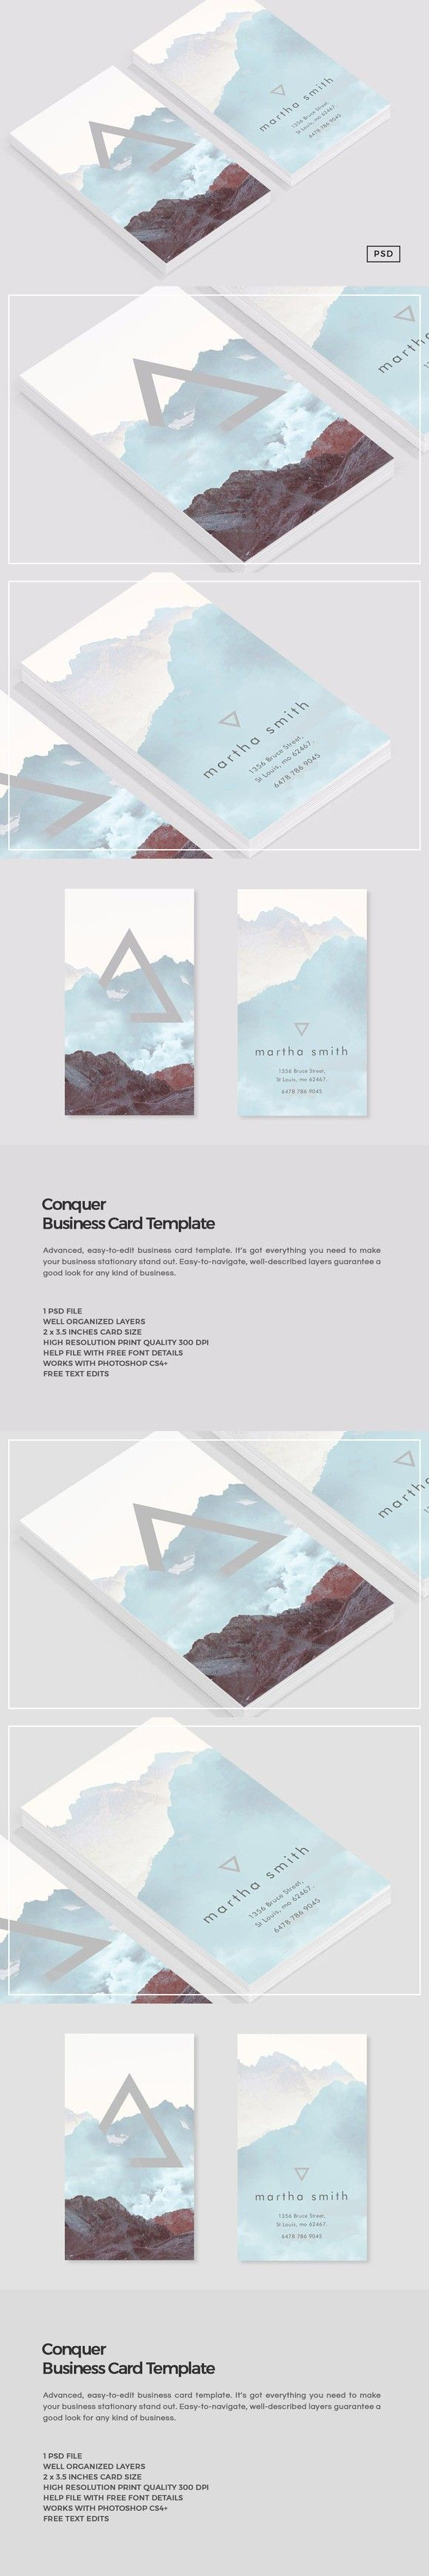 44 best business card design images on pinterest